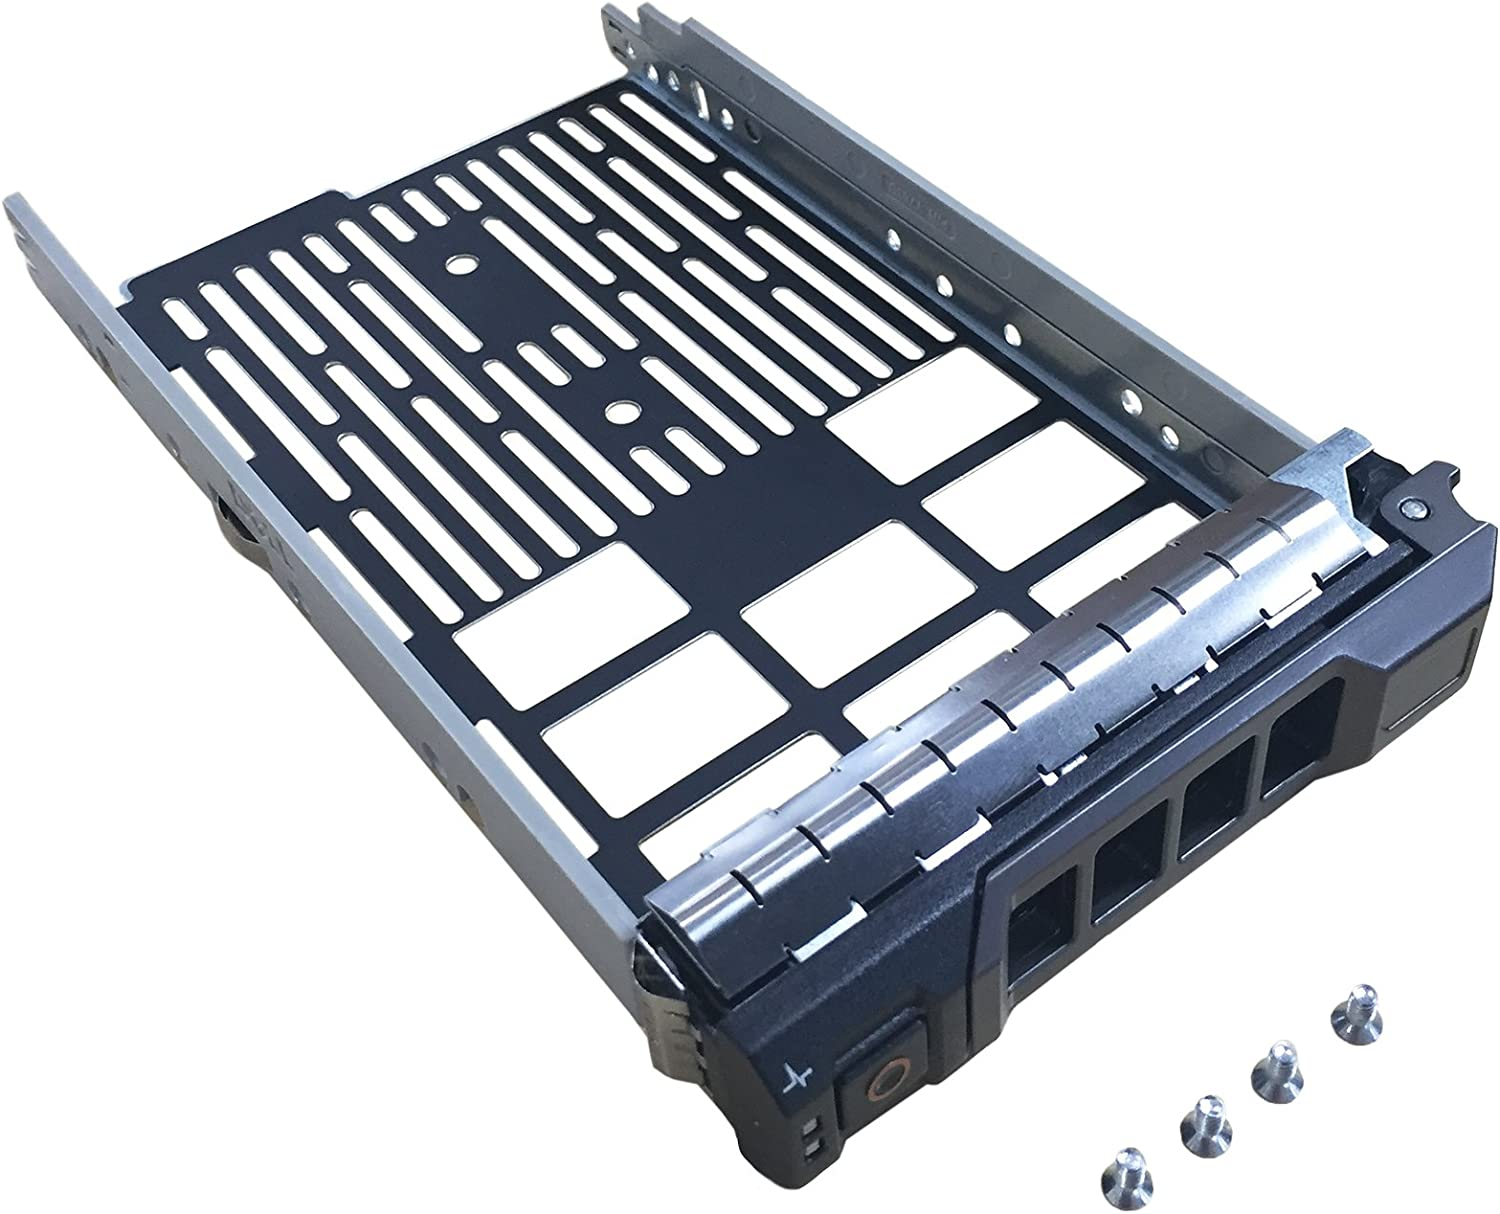 "3.5"" HDD Drive Tray Caddy For Dell R530 R630 R730 R930 T430 T630 R730XD MD1400 MD3400 Series 0KG1CH KG1CH"